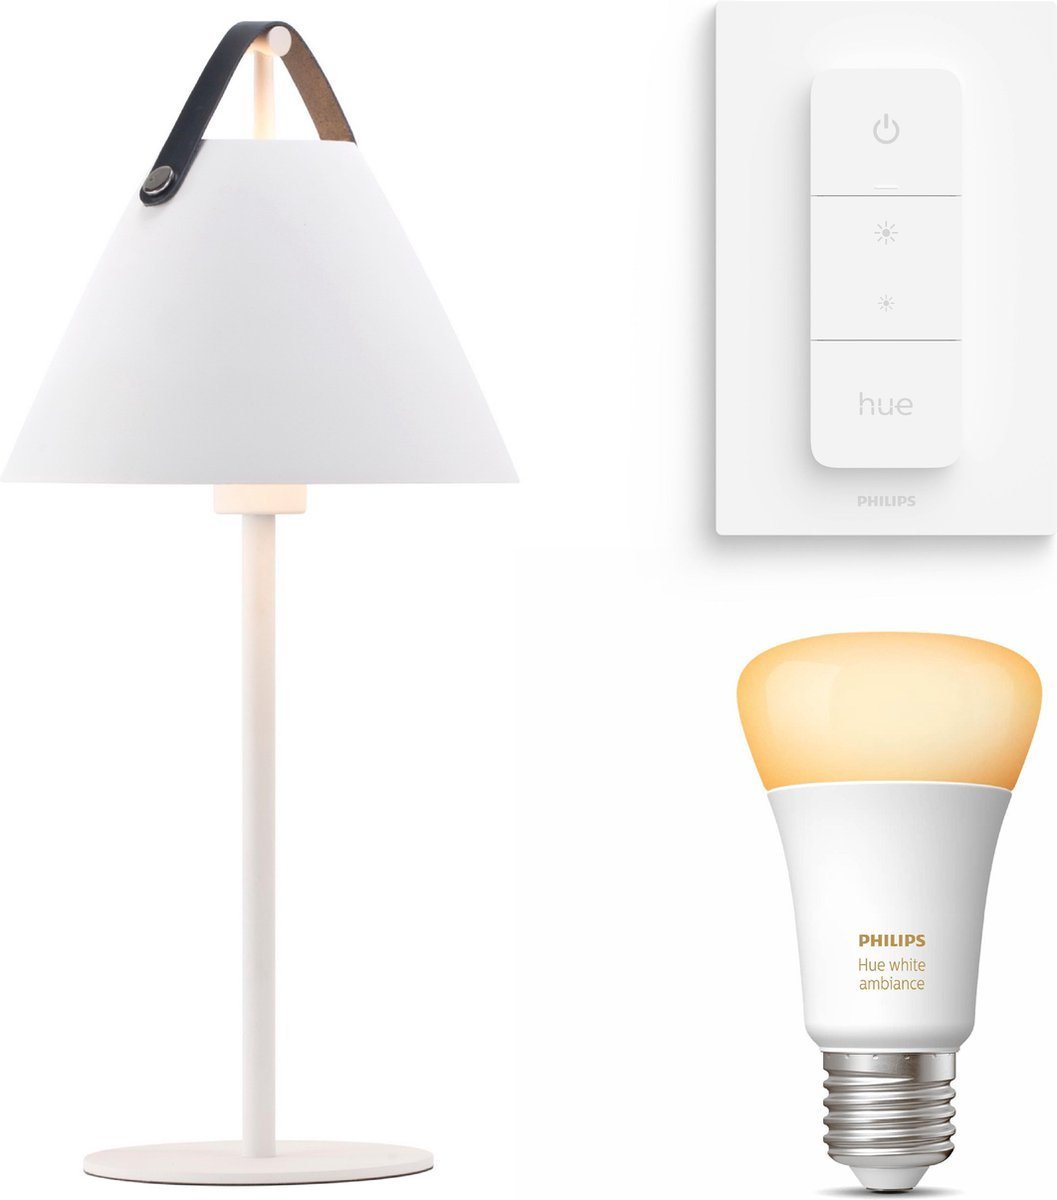 Nordlux Strap tafellamp - wit - 1 lichtpunt - Incl. Philips Hue White Ambiance E27 & dimmer